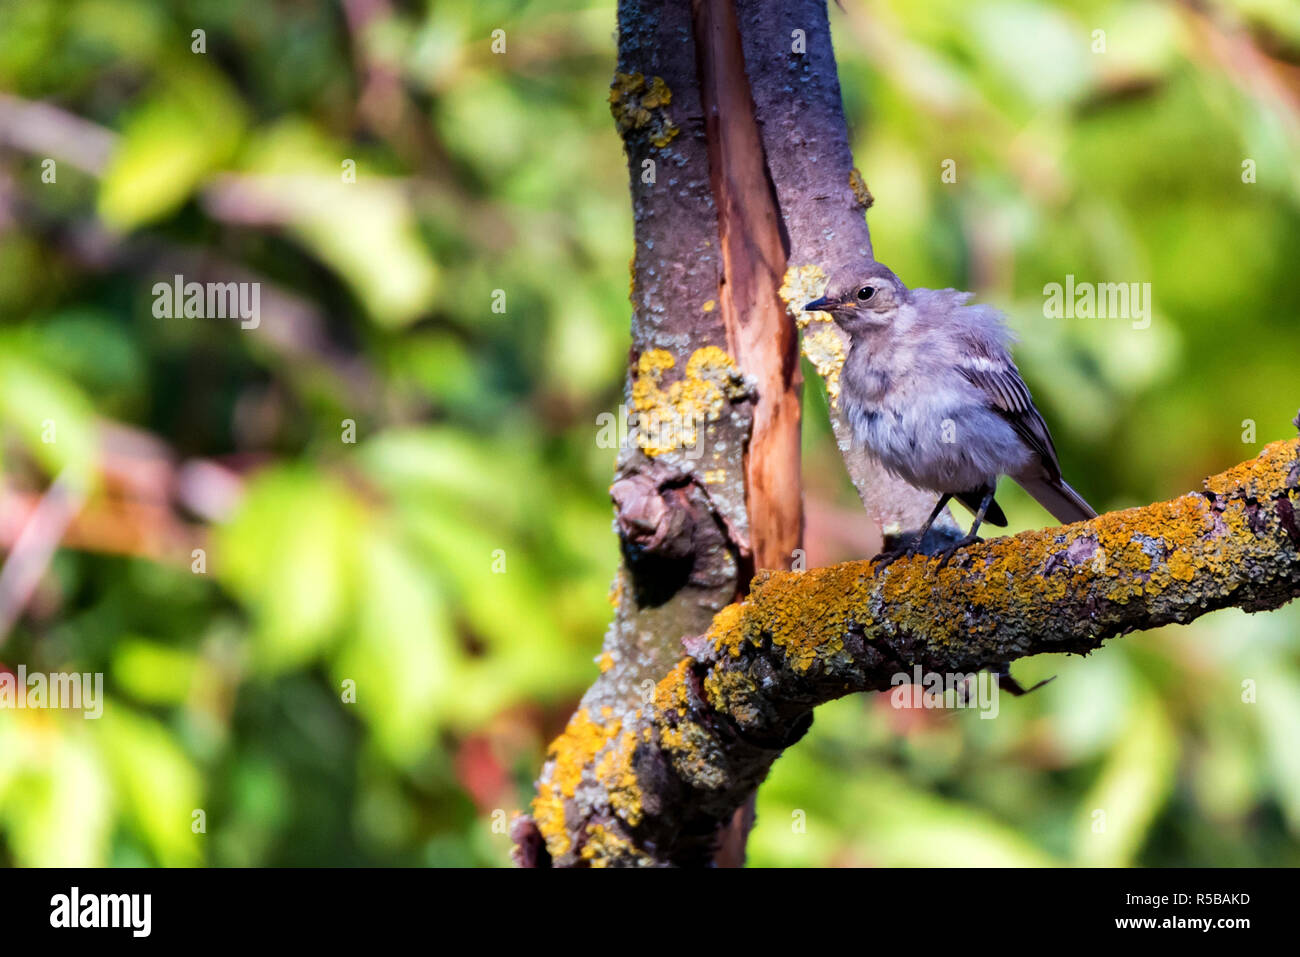 Juvenile white wagtail or Motacilla alba perches on twig - Stock Image